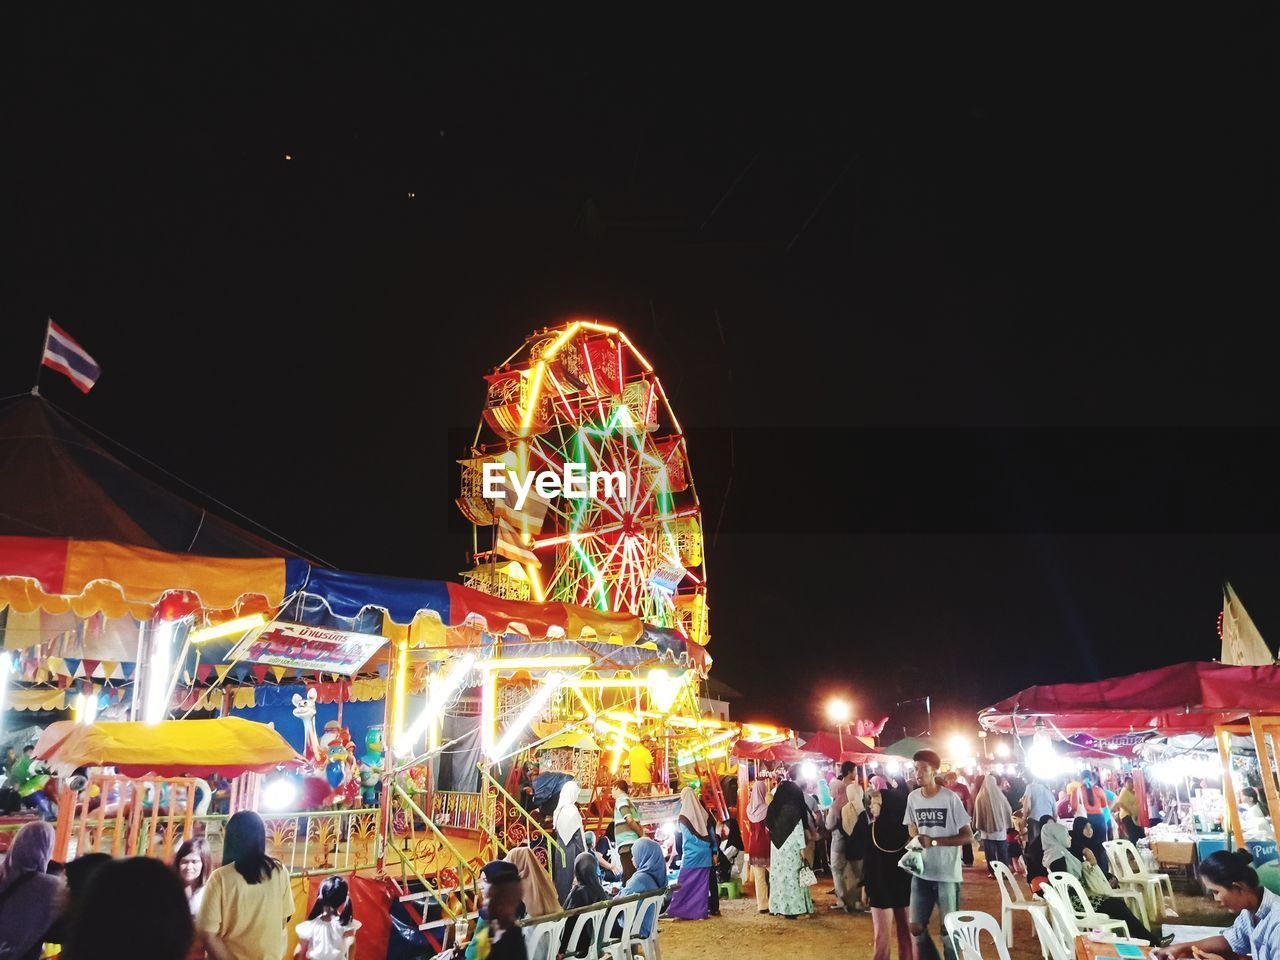 night, group of people, illuminated, crowd, amusement park, real people, amusement park ride, arts culture and entertainment, large group of people, sky, built structure, leisure activity, lifestyles, architecture, men, women, enjoyment, copy space, city, outdoors, festival, light, excitement